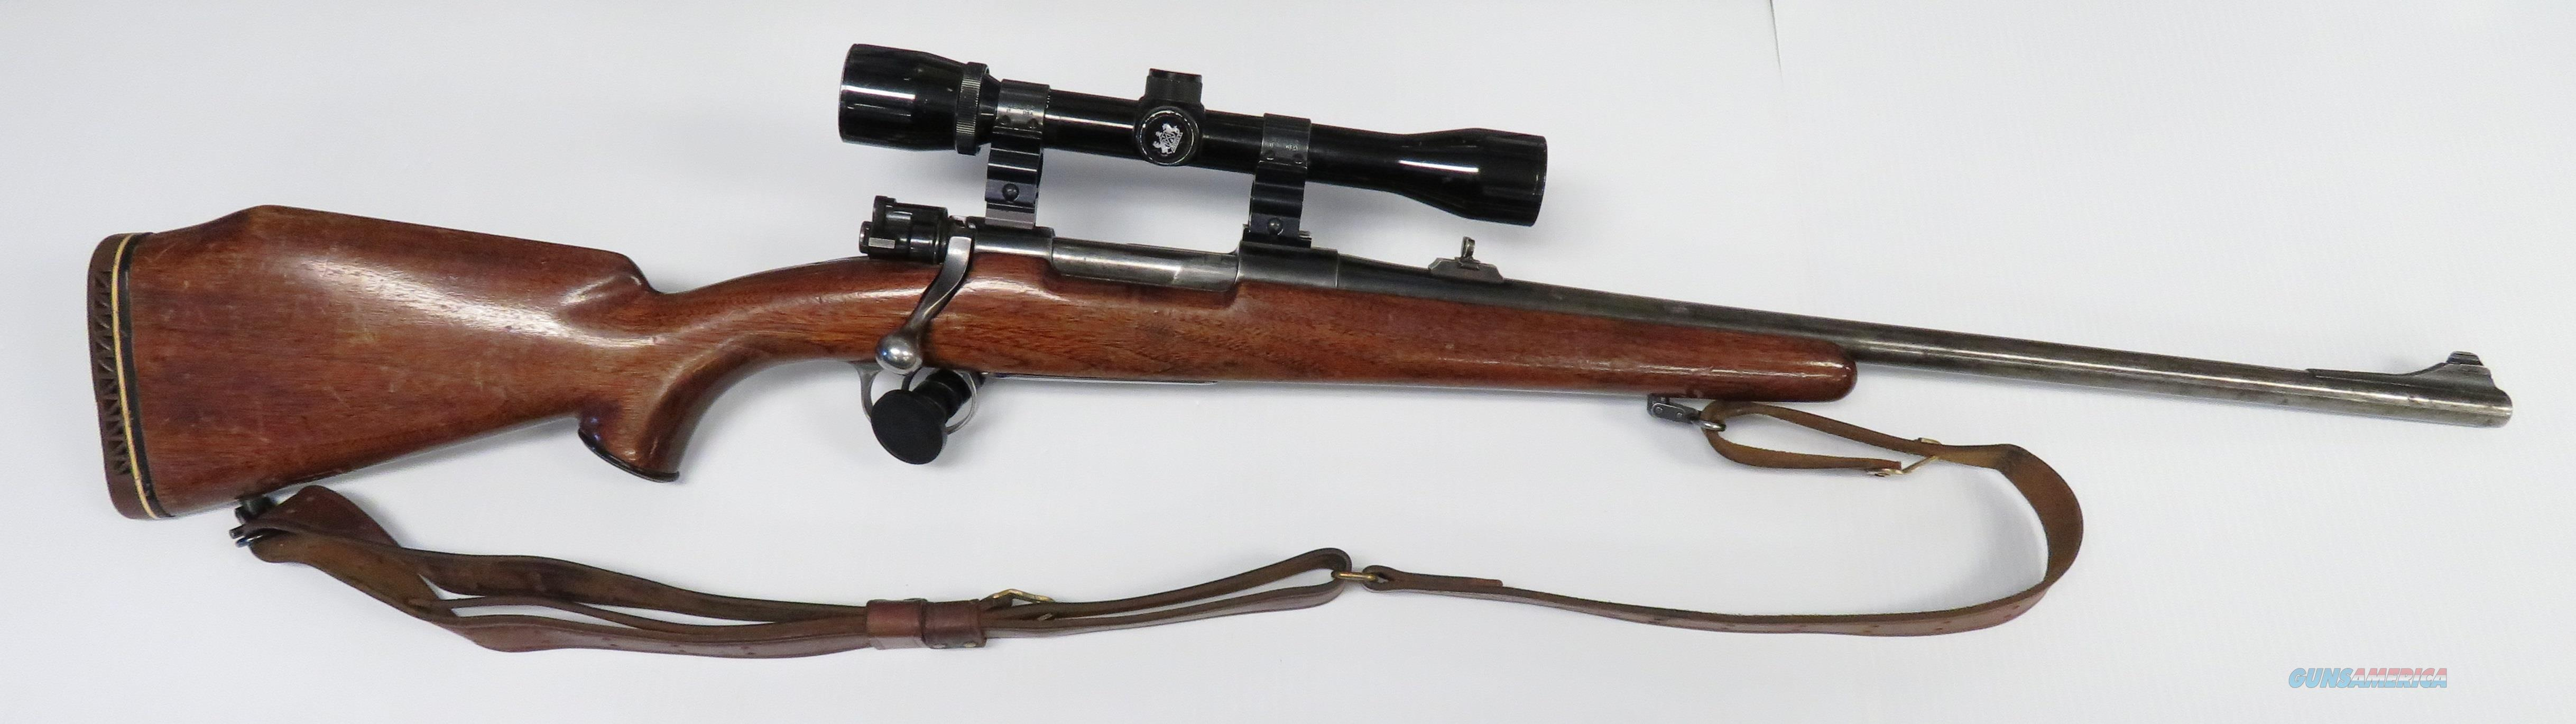 "Mauser .308 Winchester Bolt-Action Rifle 21"" Barrel with Sling and Optic  Guns > Rifles > Mauser Rifles > German"